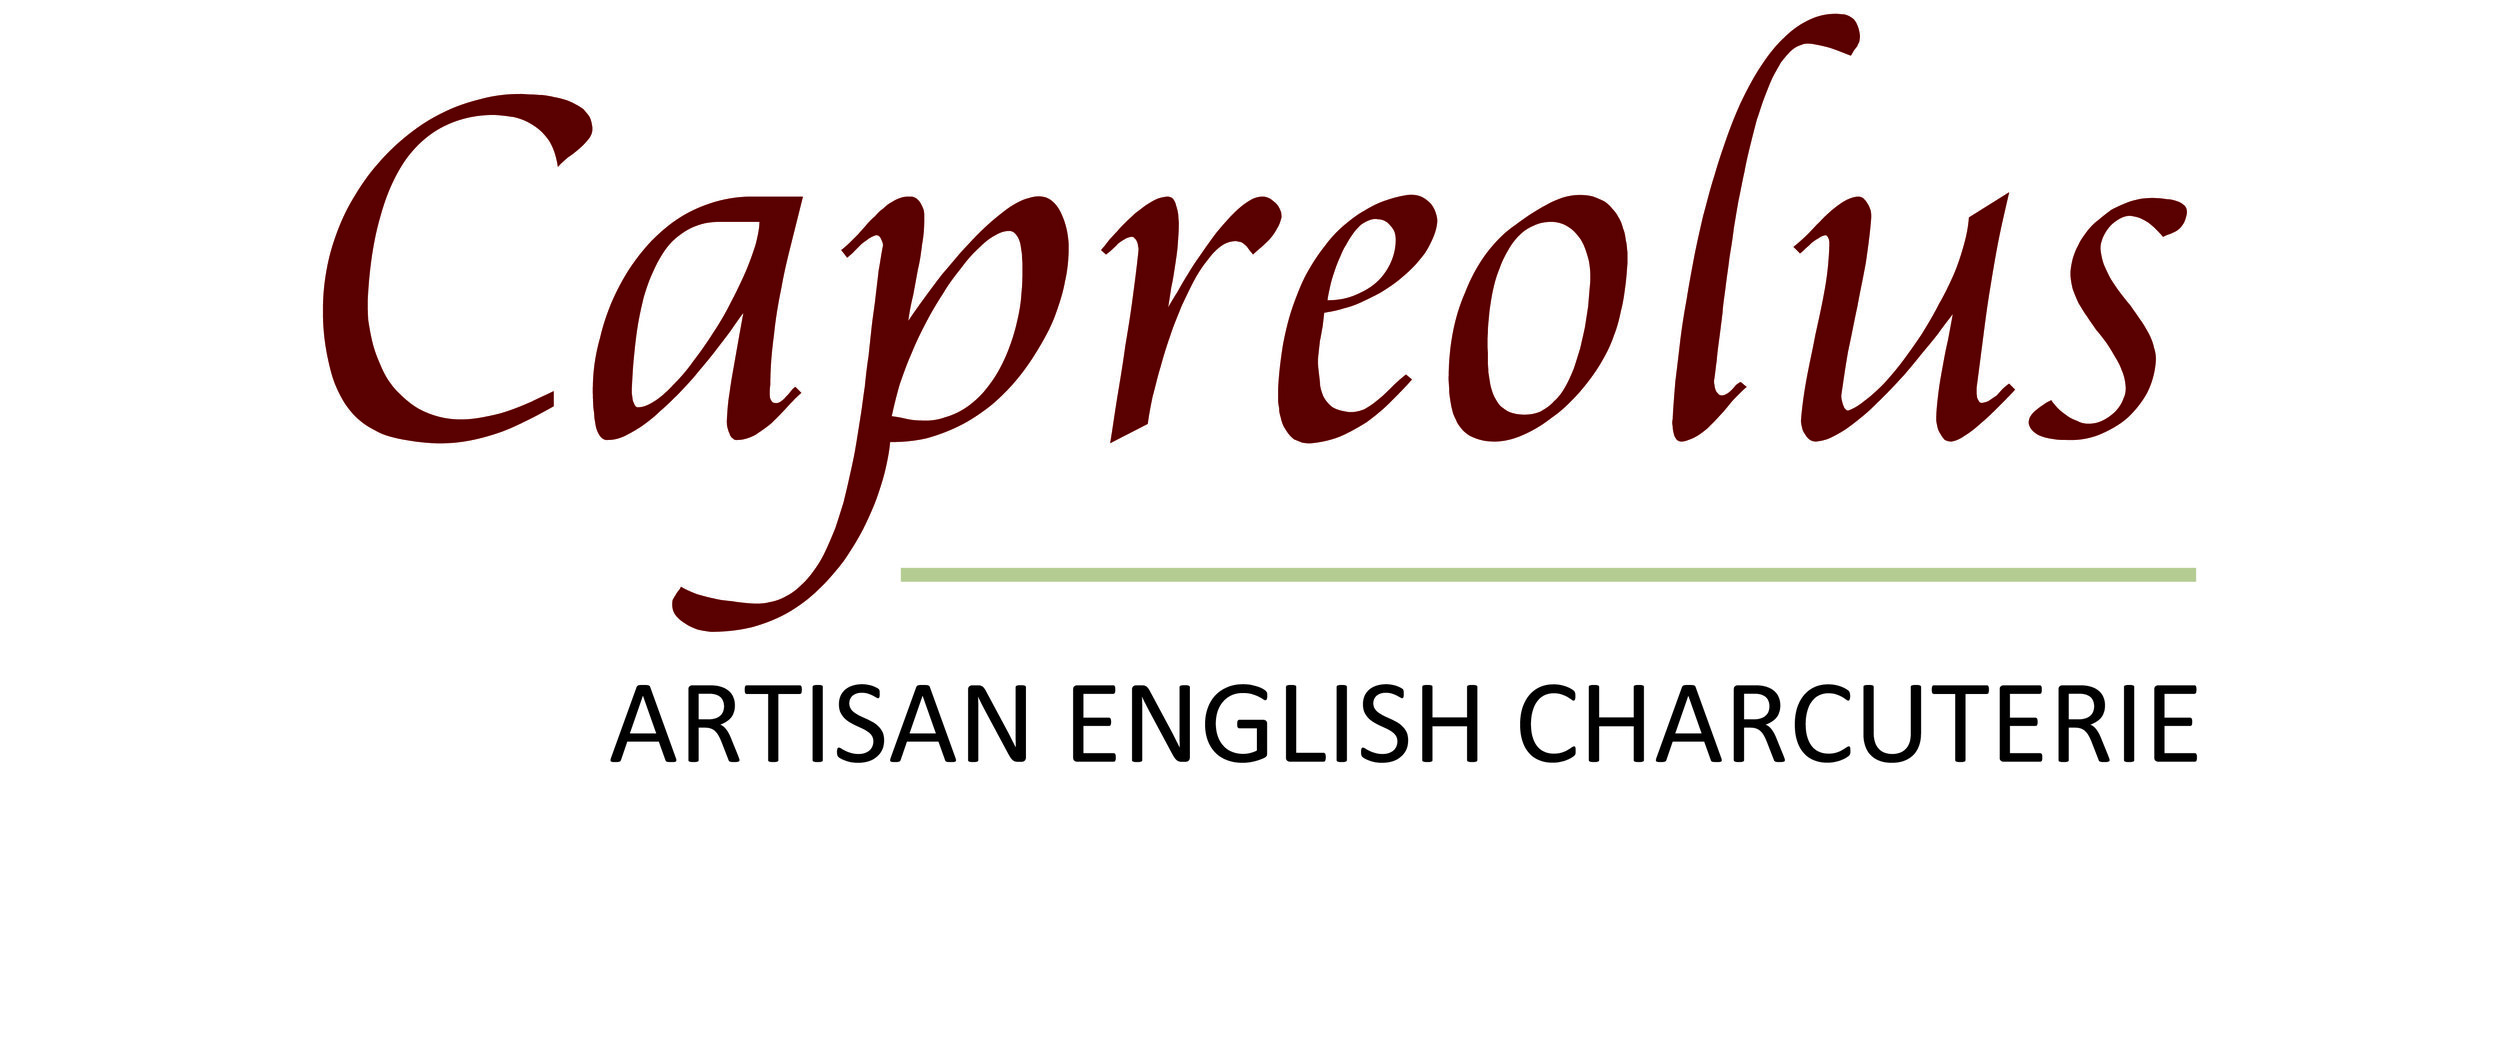 Capreolus logo - May 2014.jpg